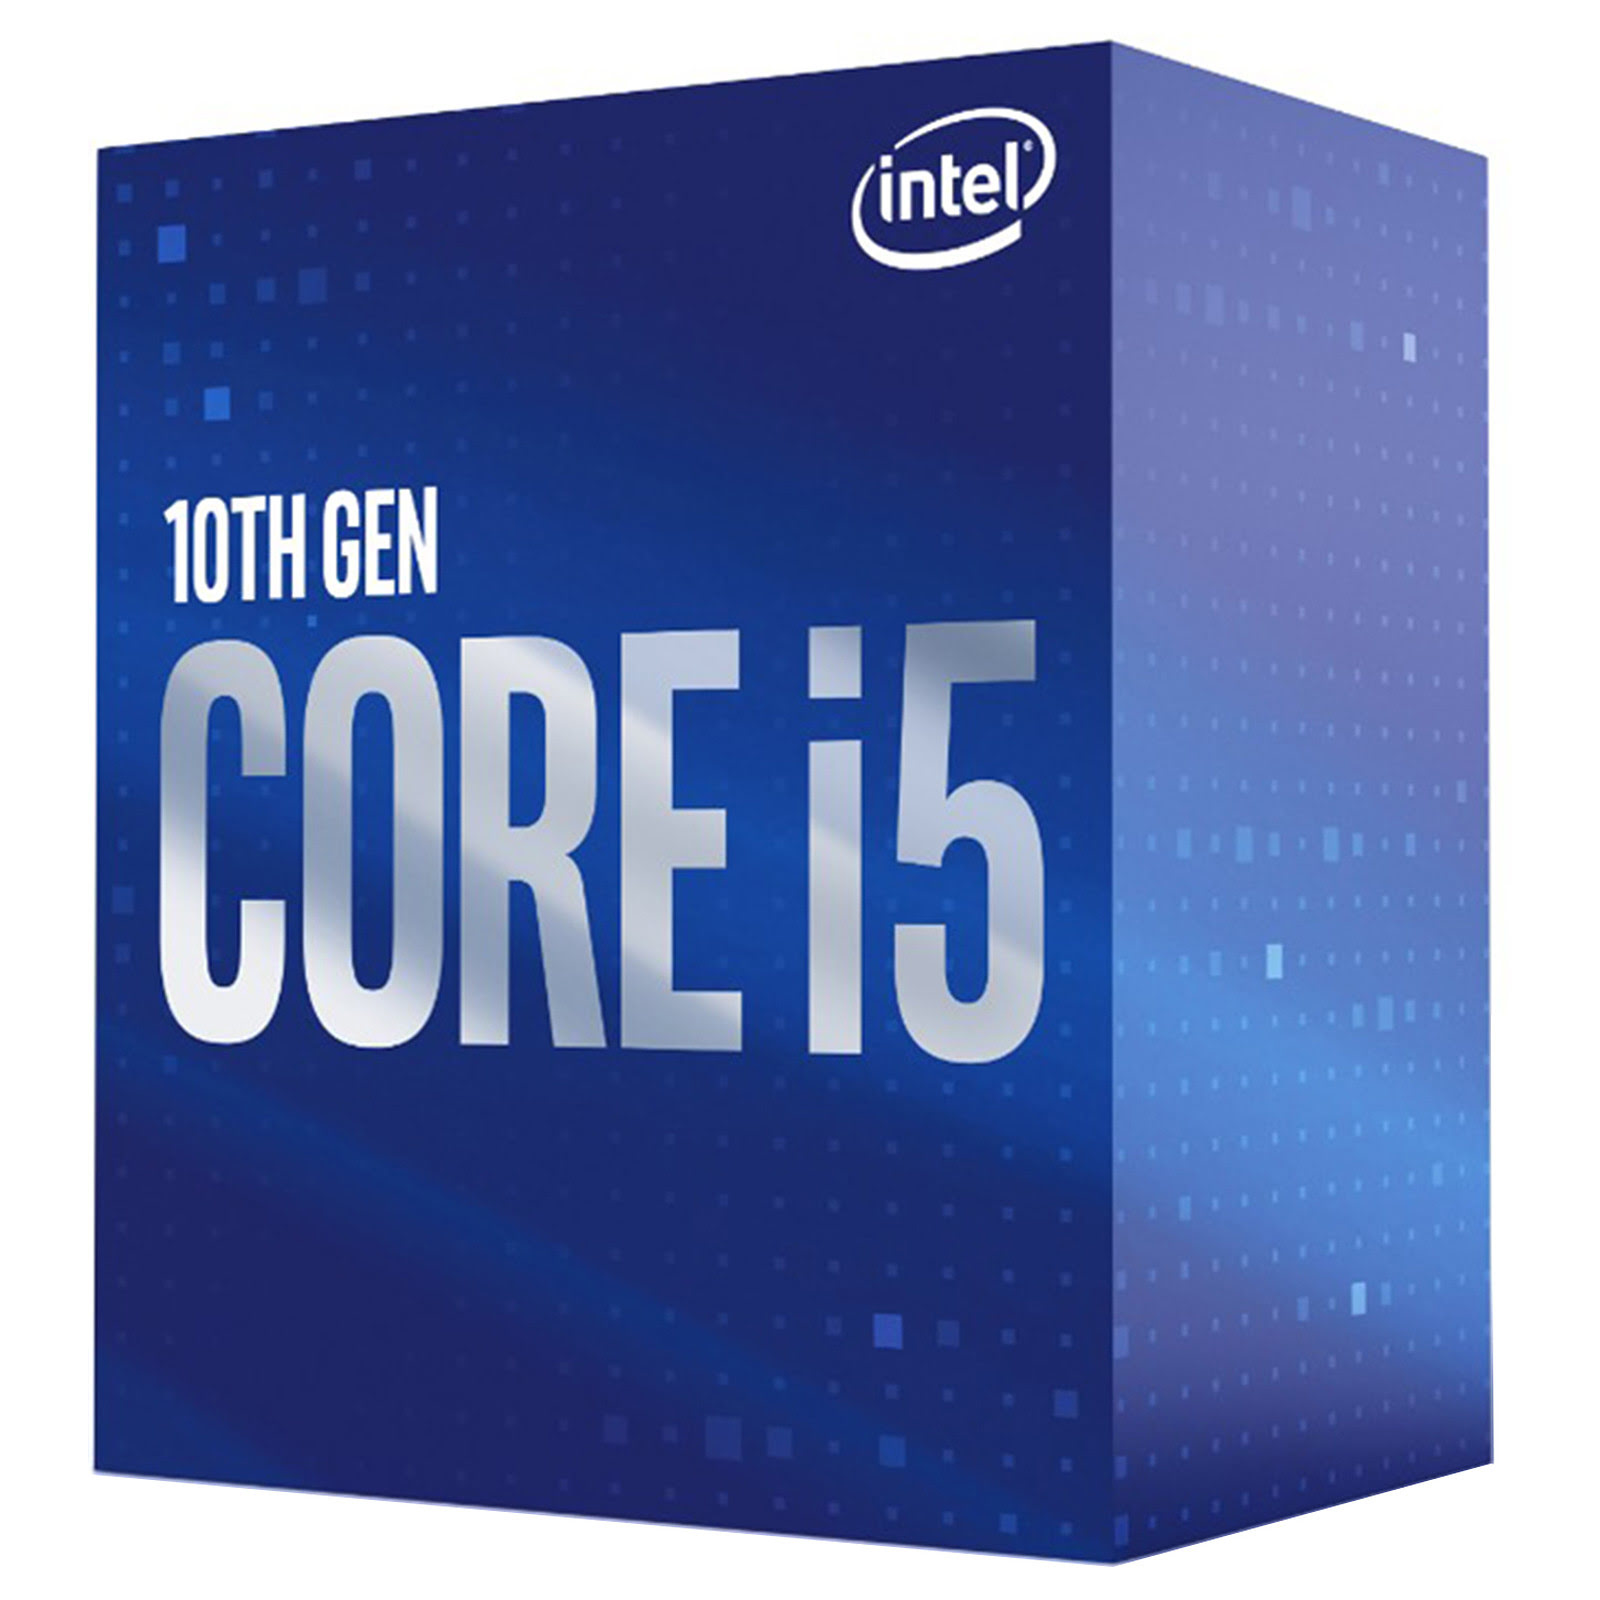 Intel Core i5-10400 - 2.9GHz - Processeur Intel - Cybertek.fr - 1